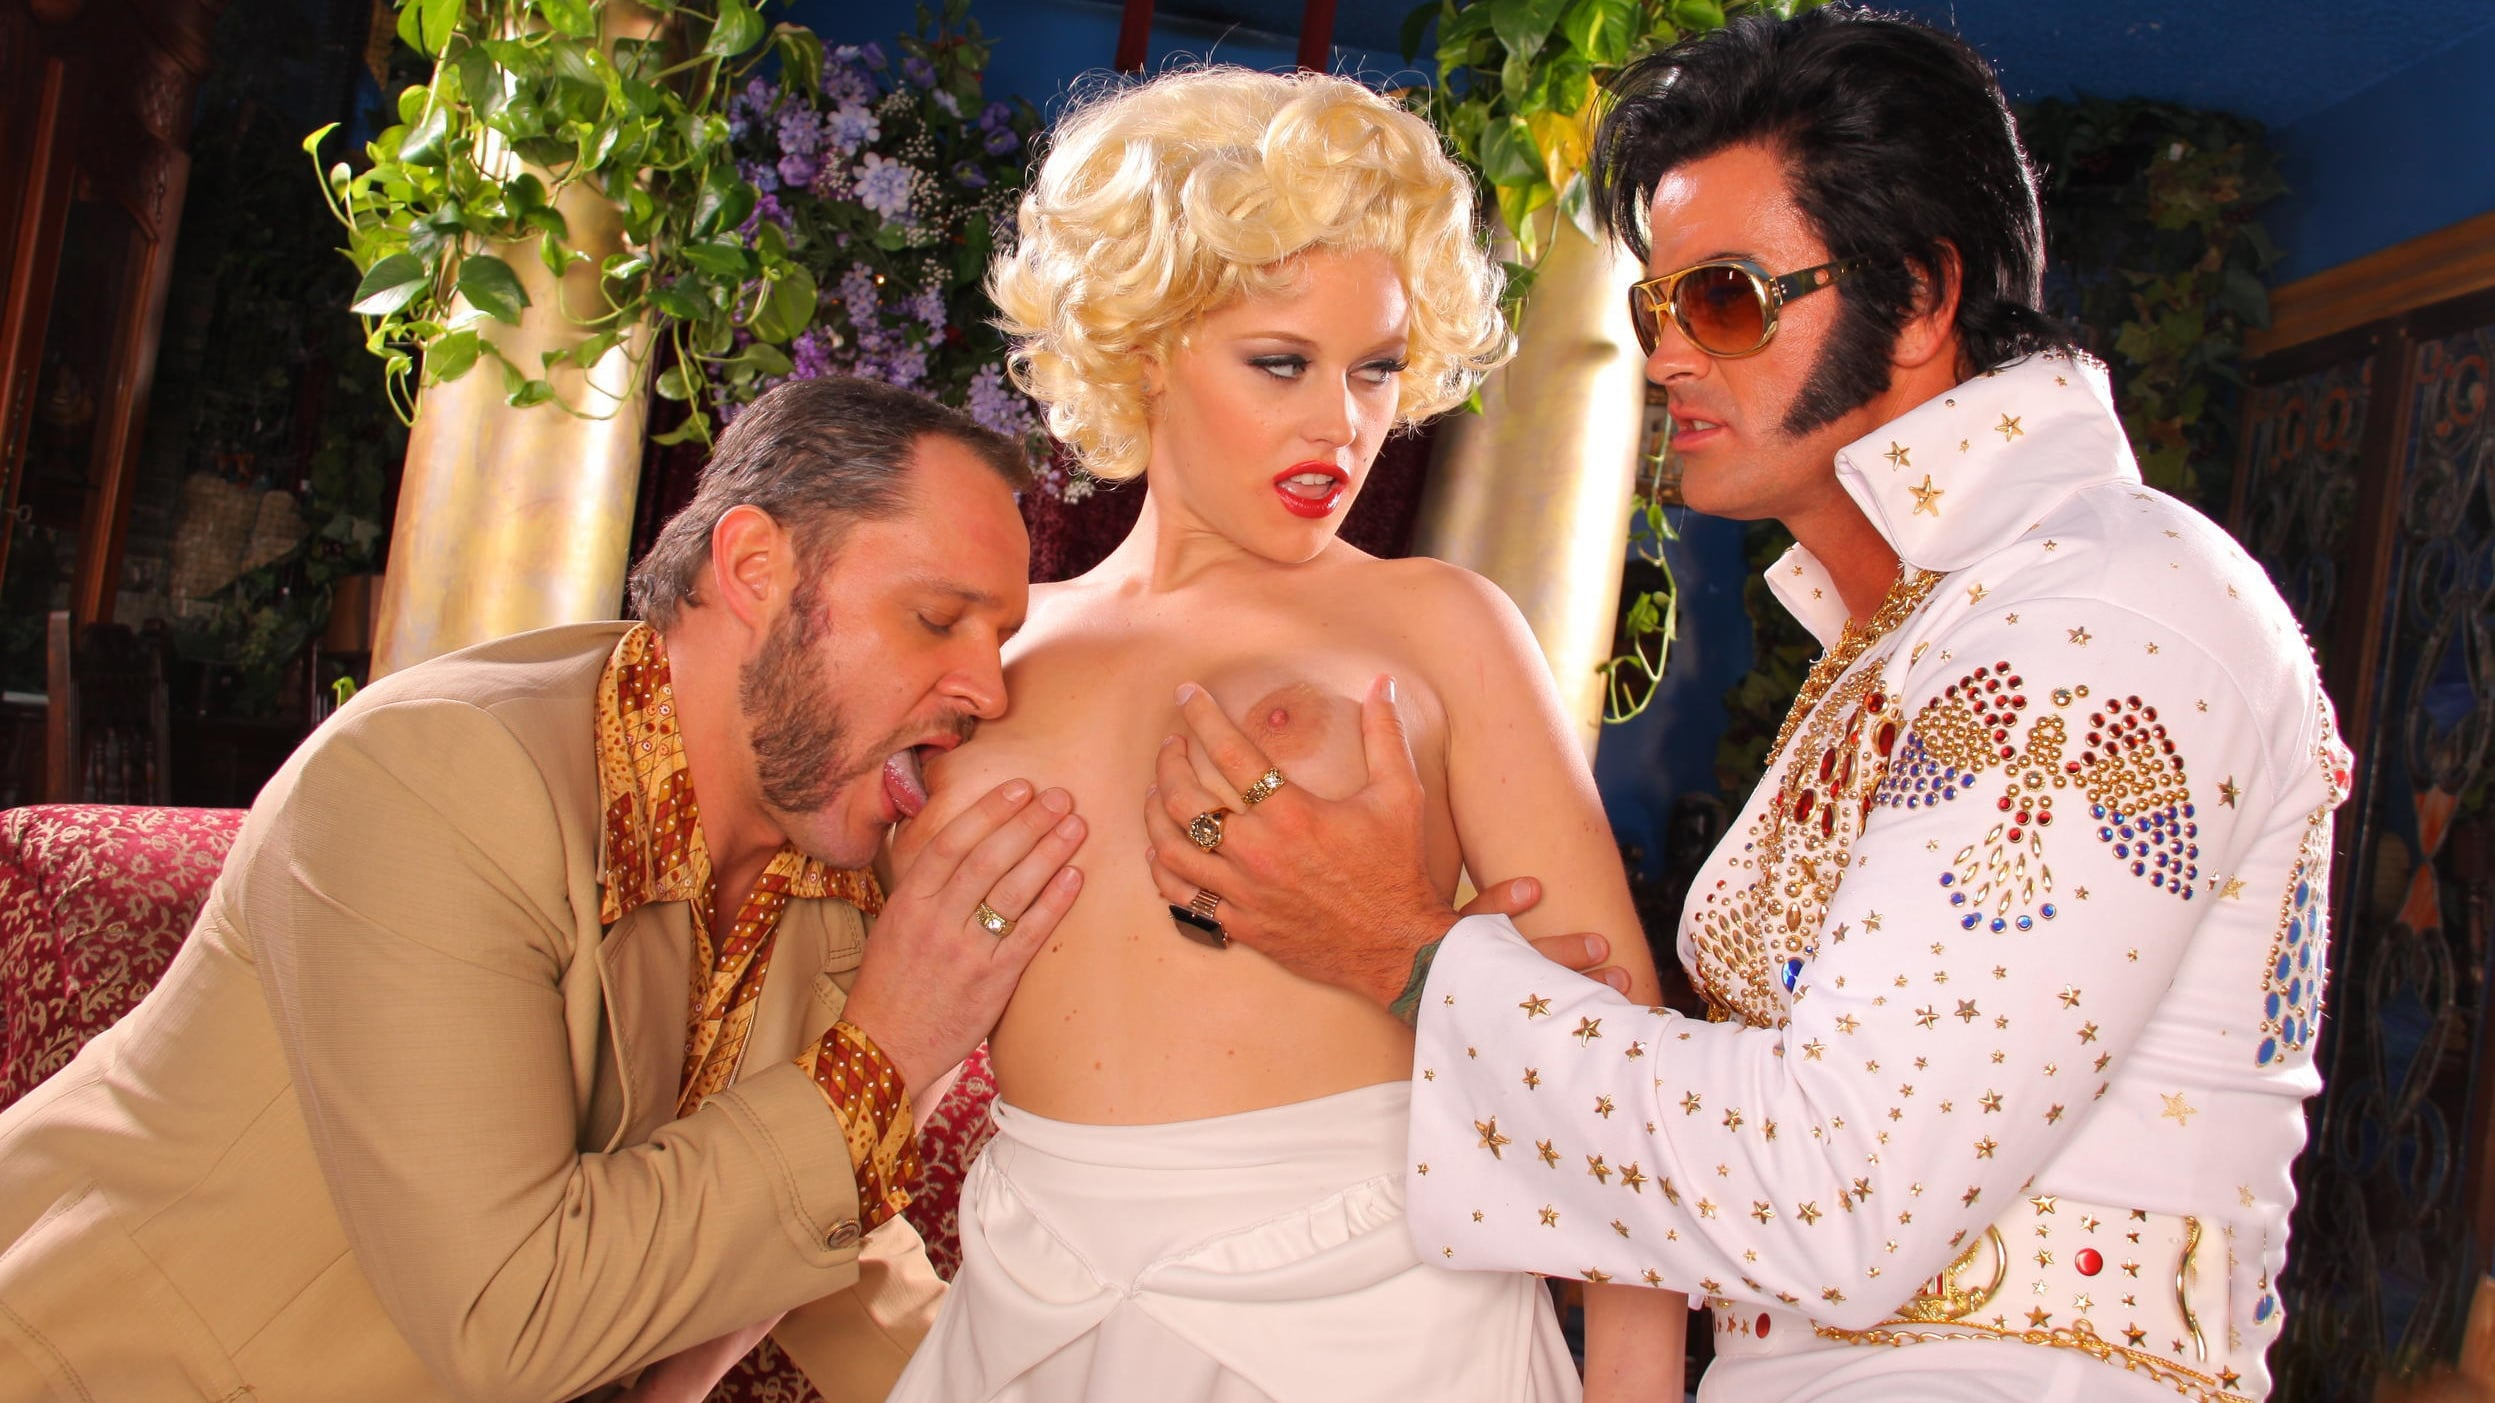 Elvis parody threesome